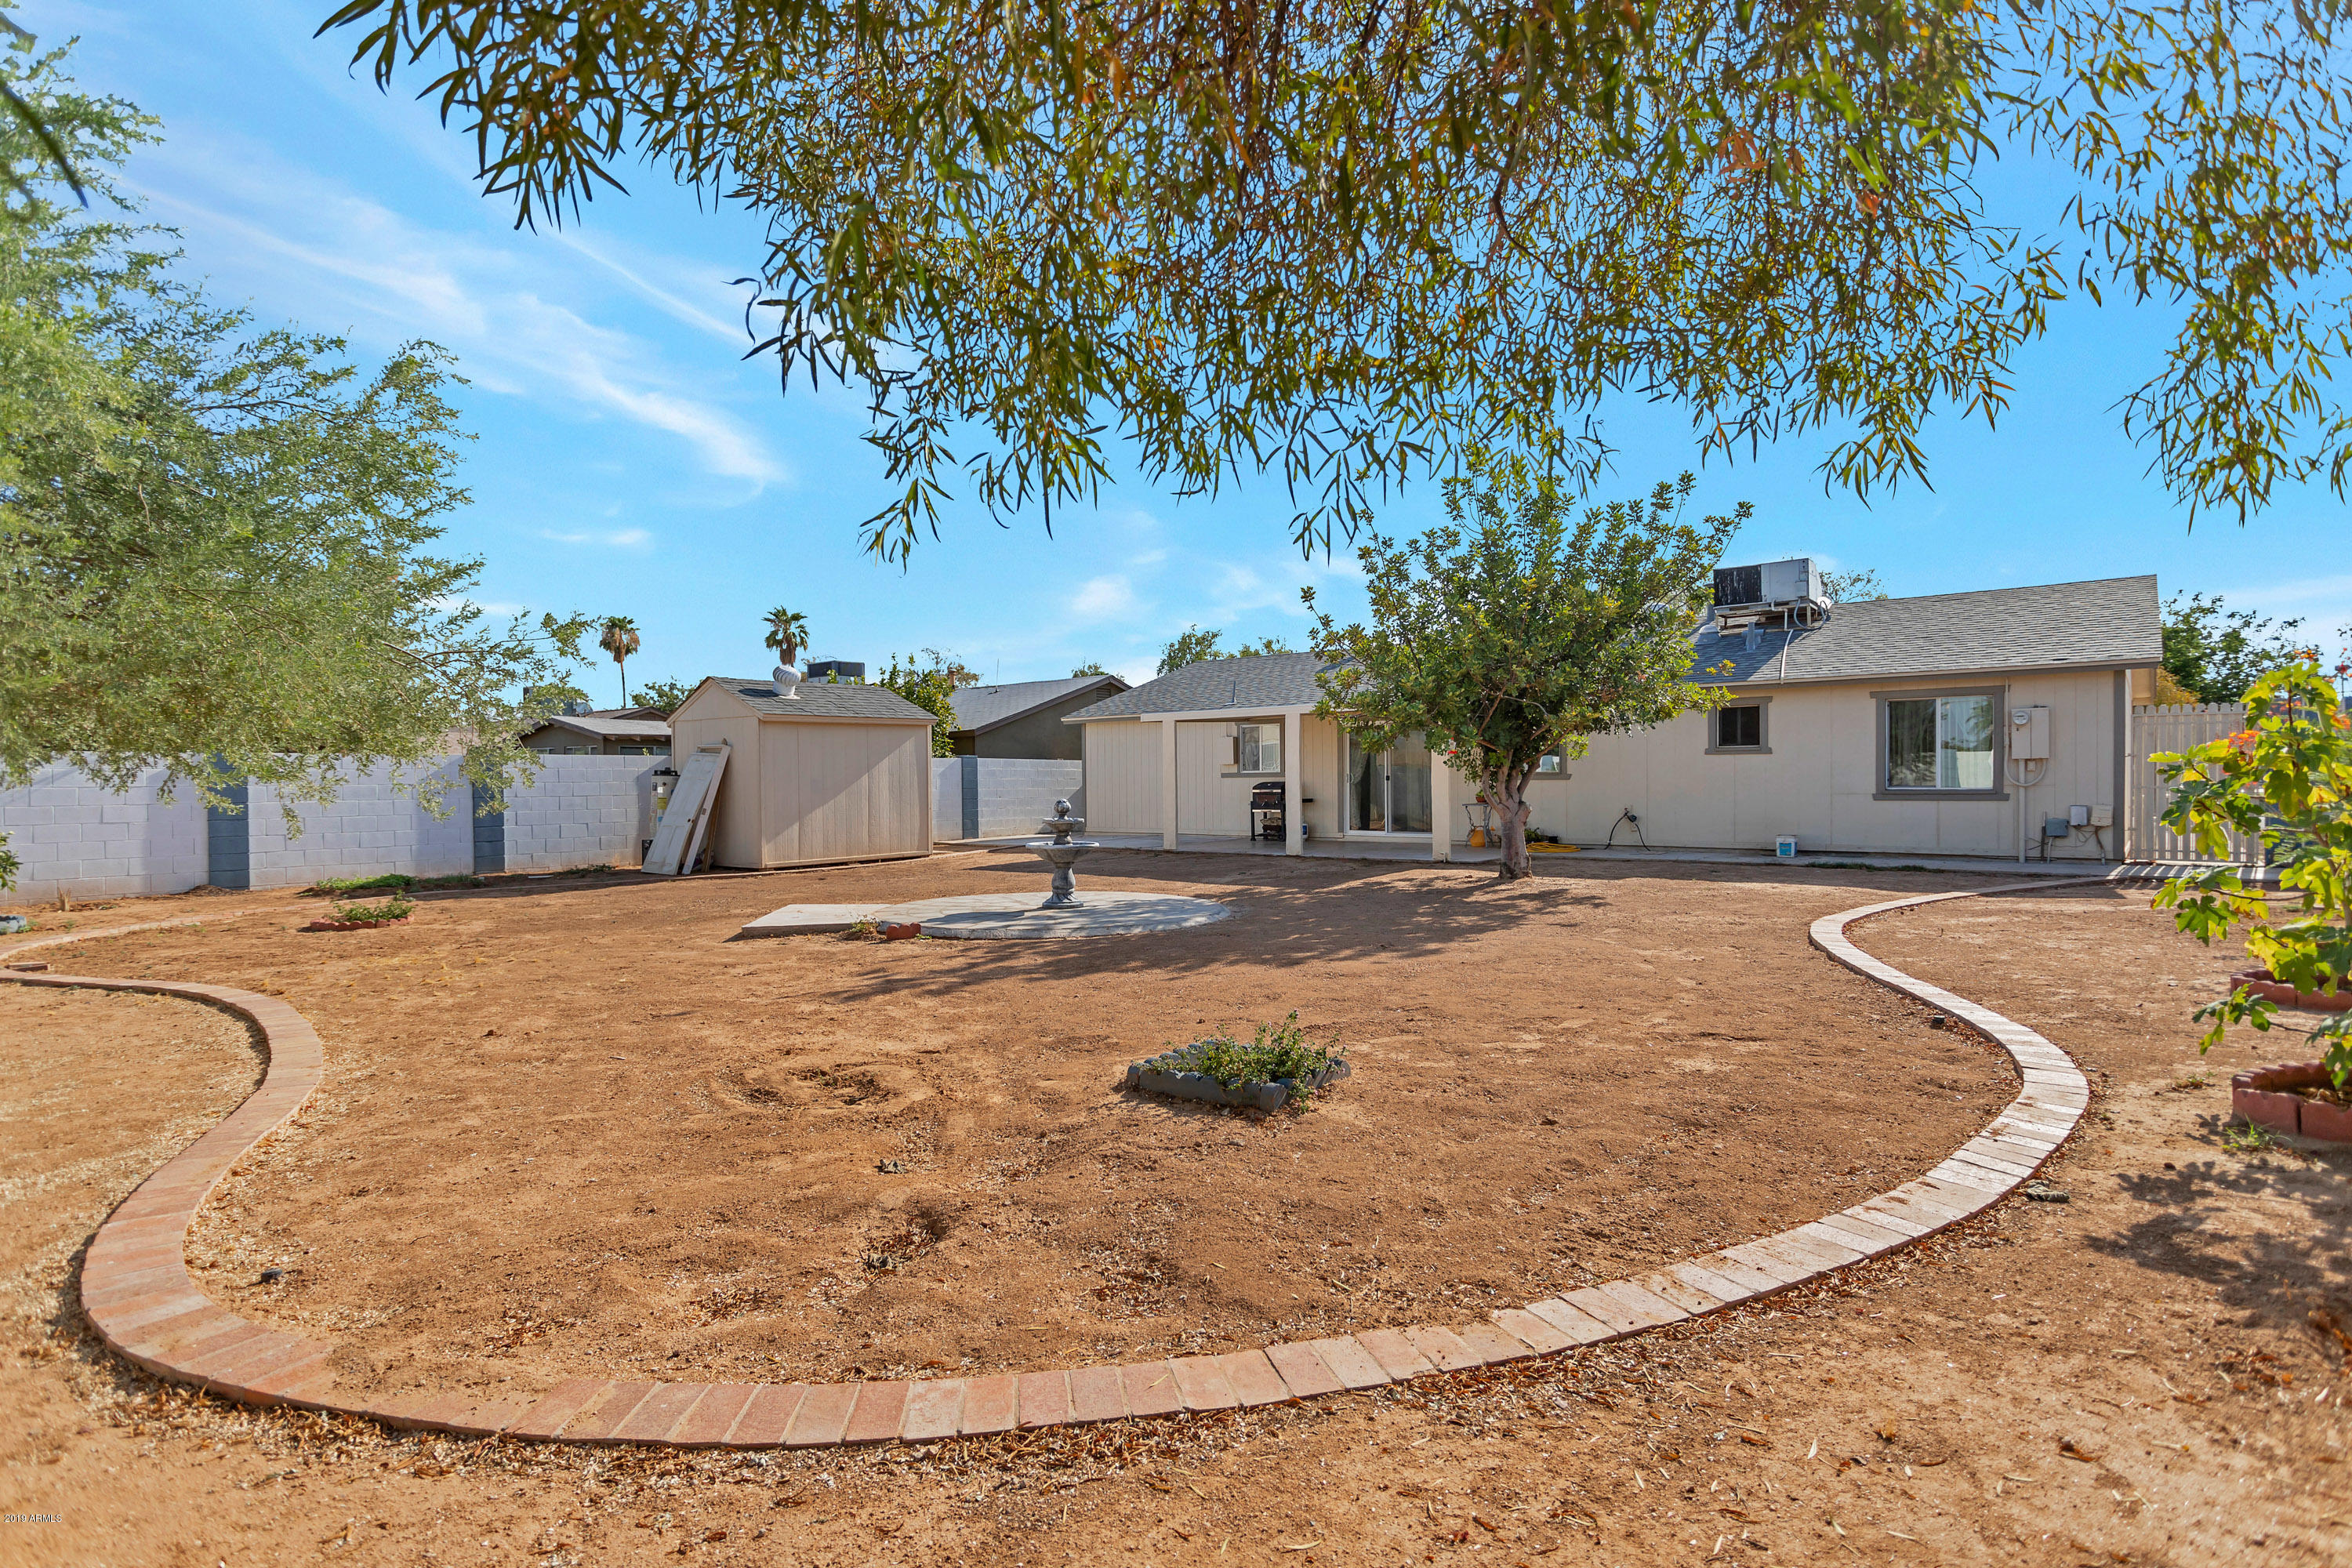 MLS 5955887 14219 N 39TH Way, Phoenix, AZ 85032 Phoenix AZ Paradise Valley Oasis